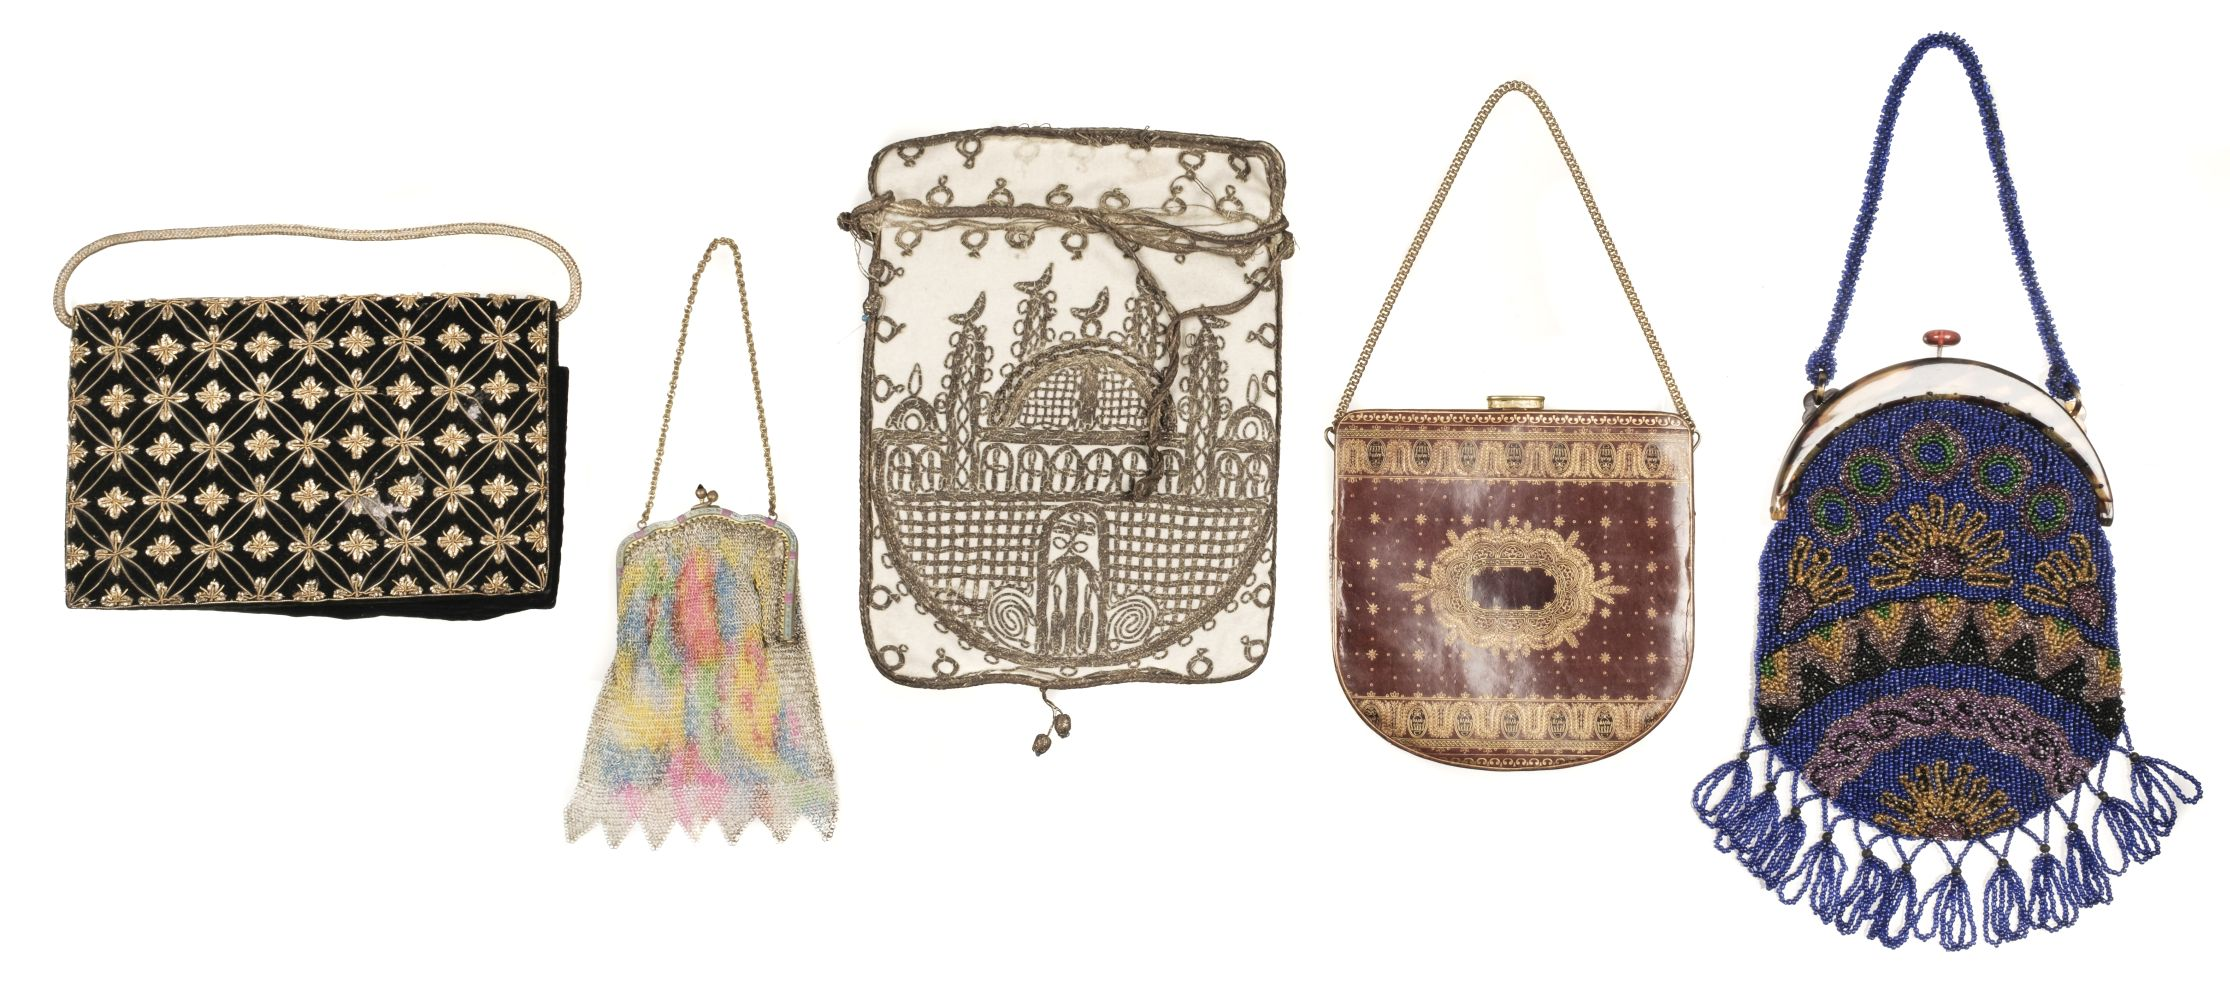 * Bags. A collection of beaded bags and other accessories, late 19th-early 20th century